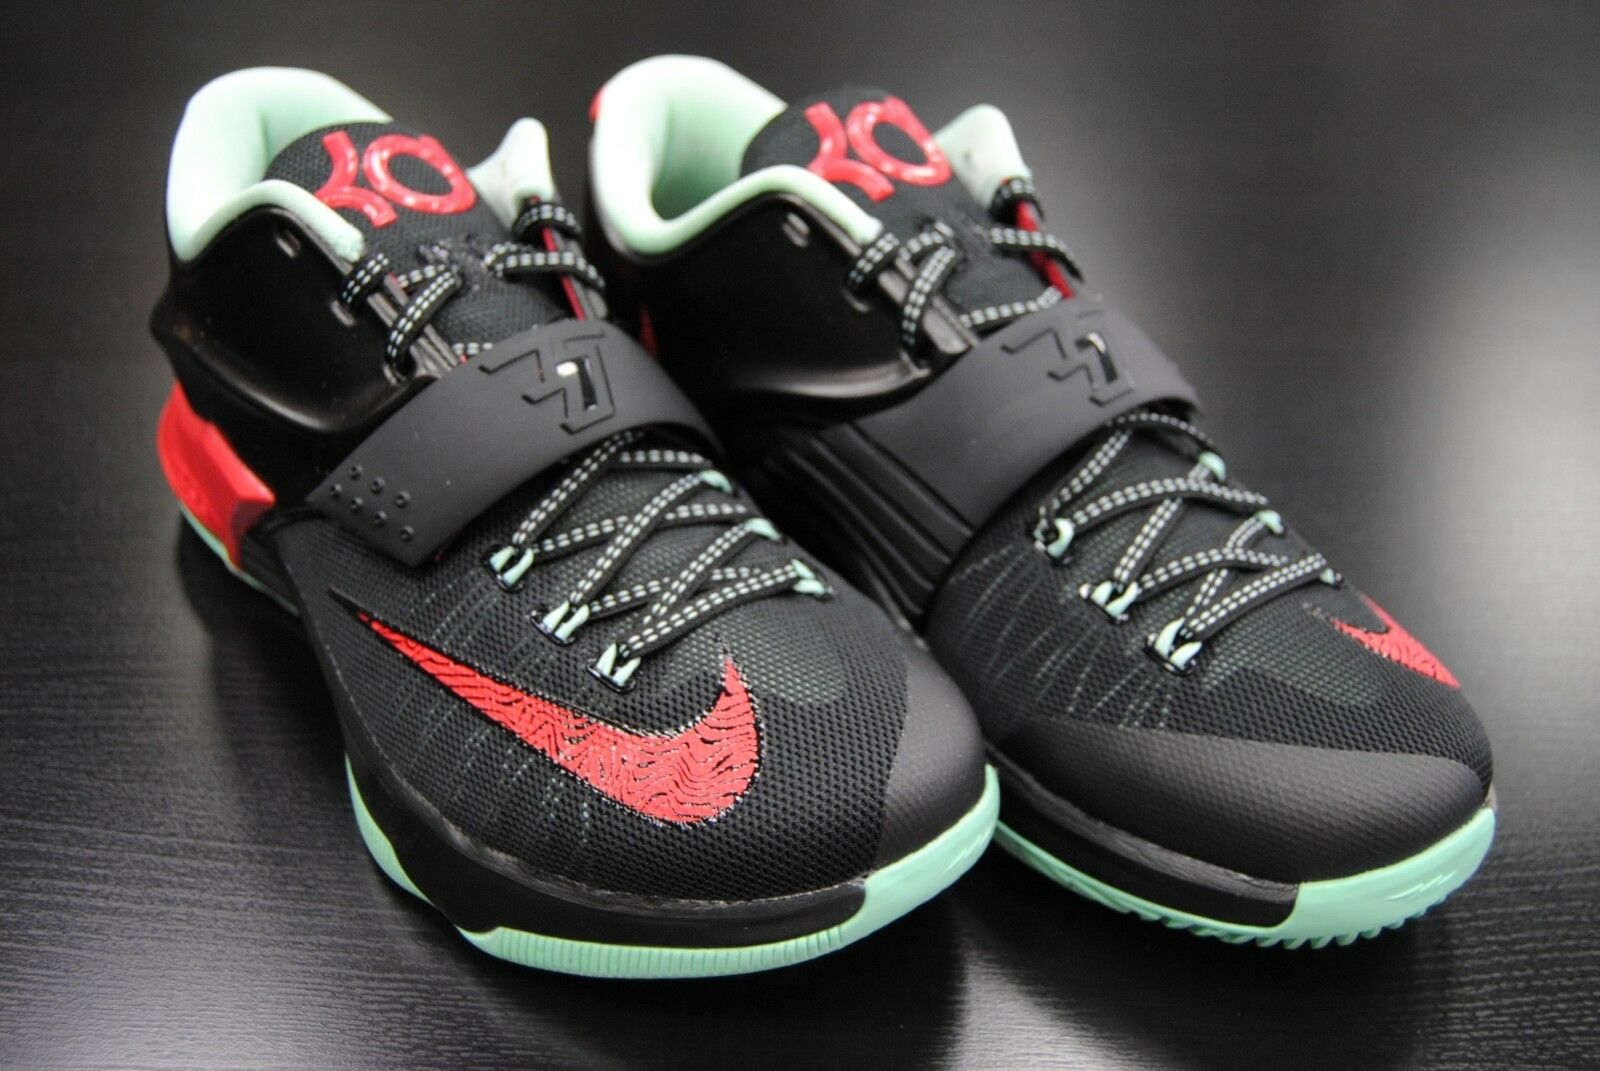 [653996 063] NEW MEN'S NIKE KD VII VII VII 7 BAD APPLES BLACK ACTION RED MID MIND LE569 cceb95